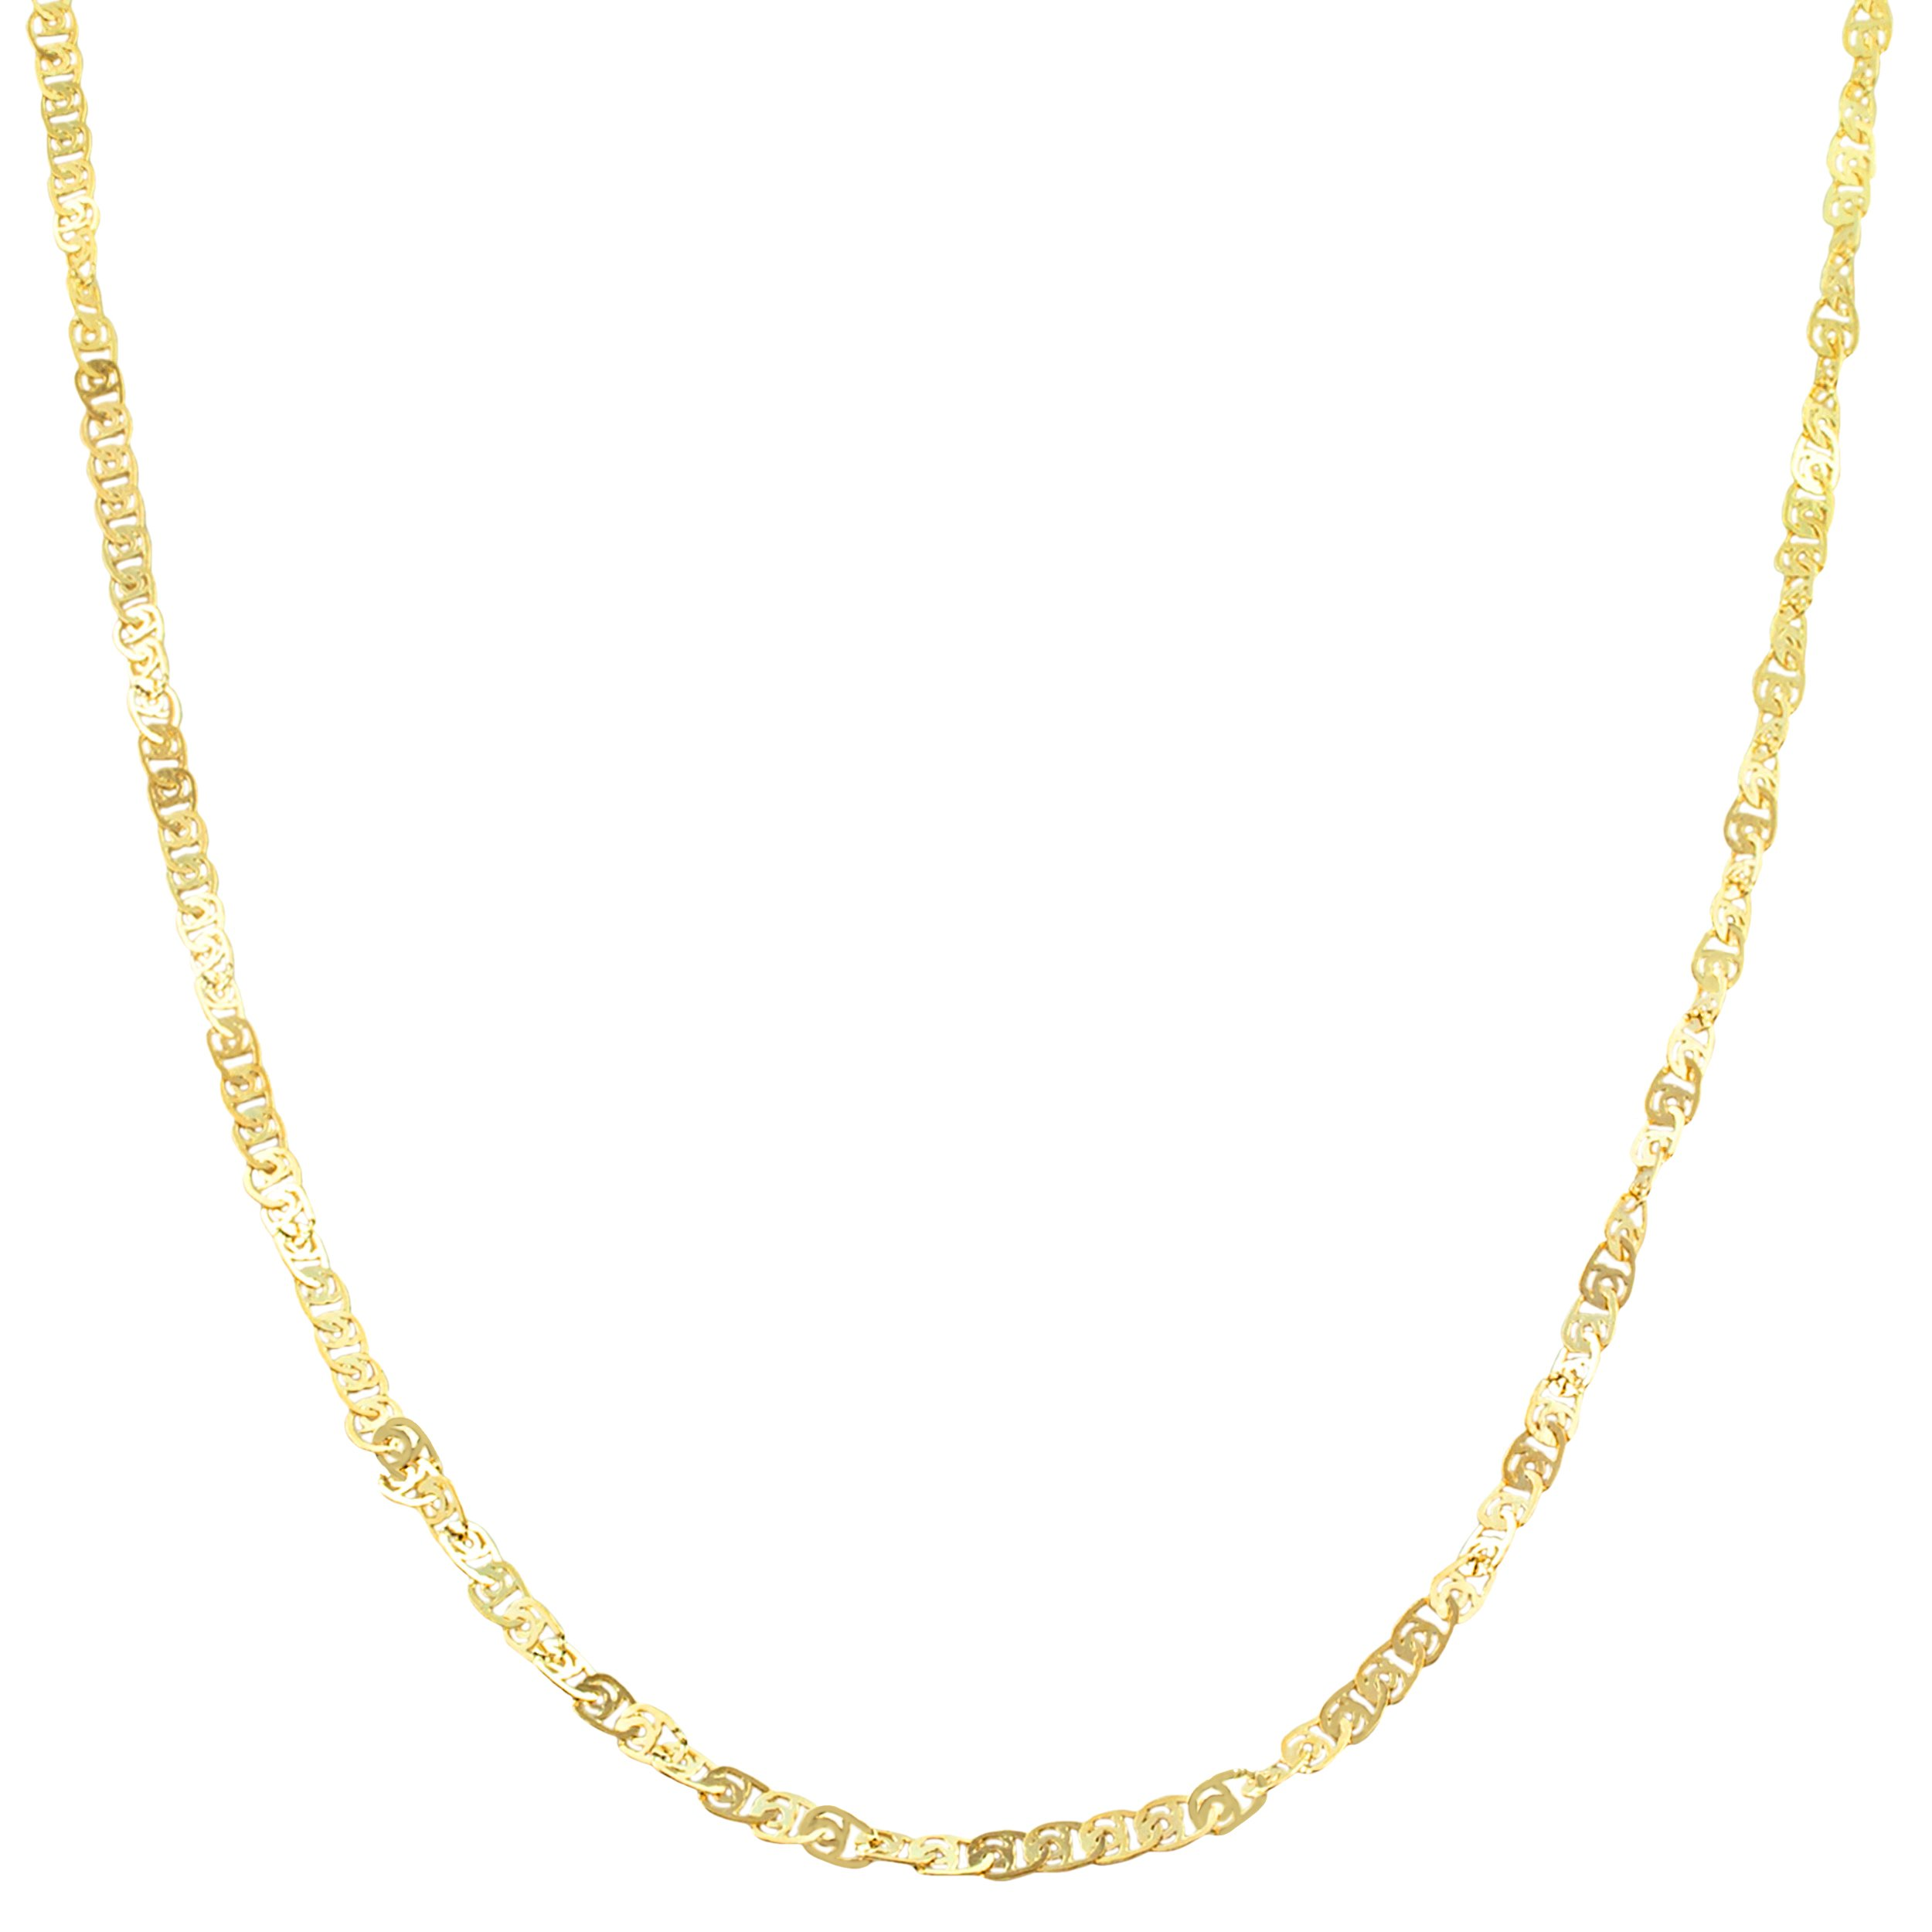 10k Yellow Gold 1.8mm Flat Twisted Love Chain (18 inch)